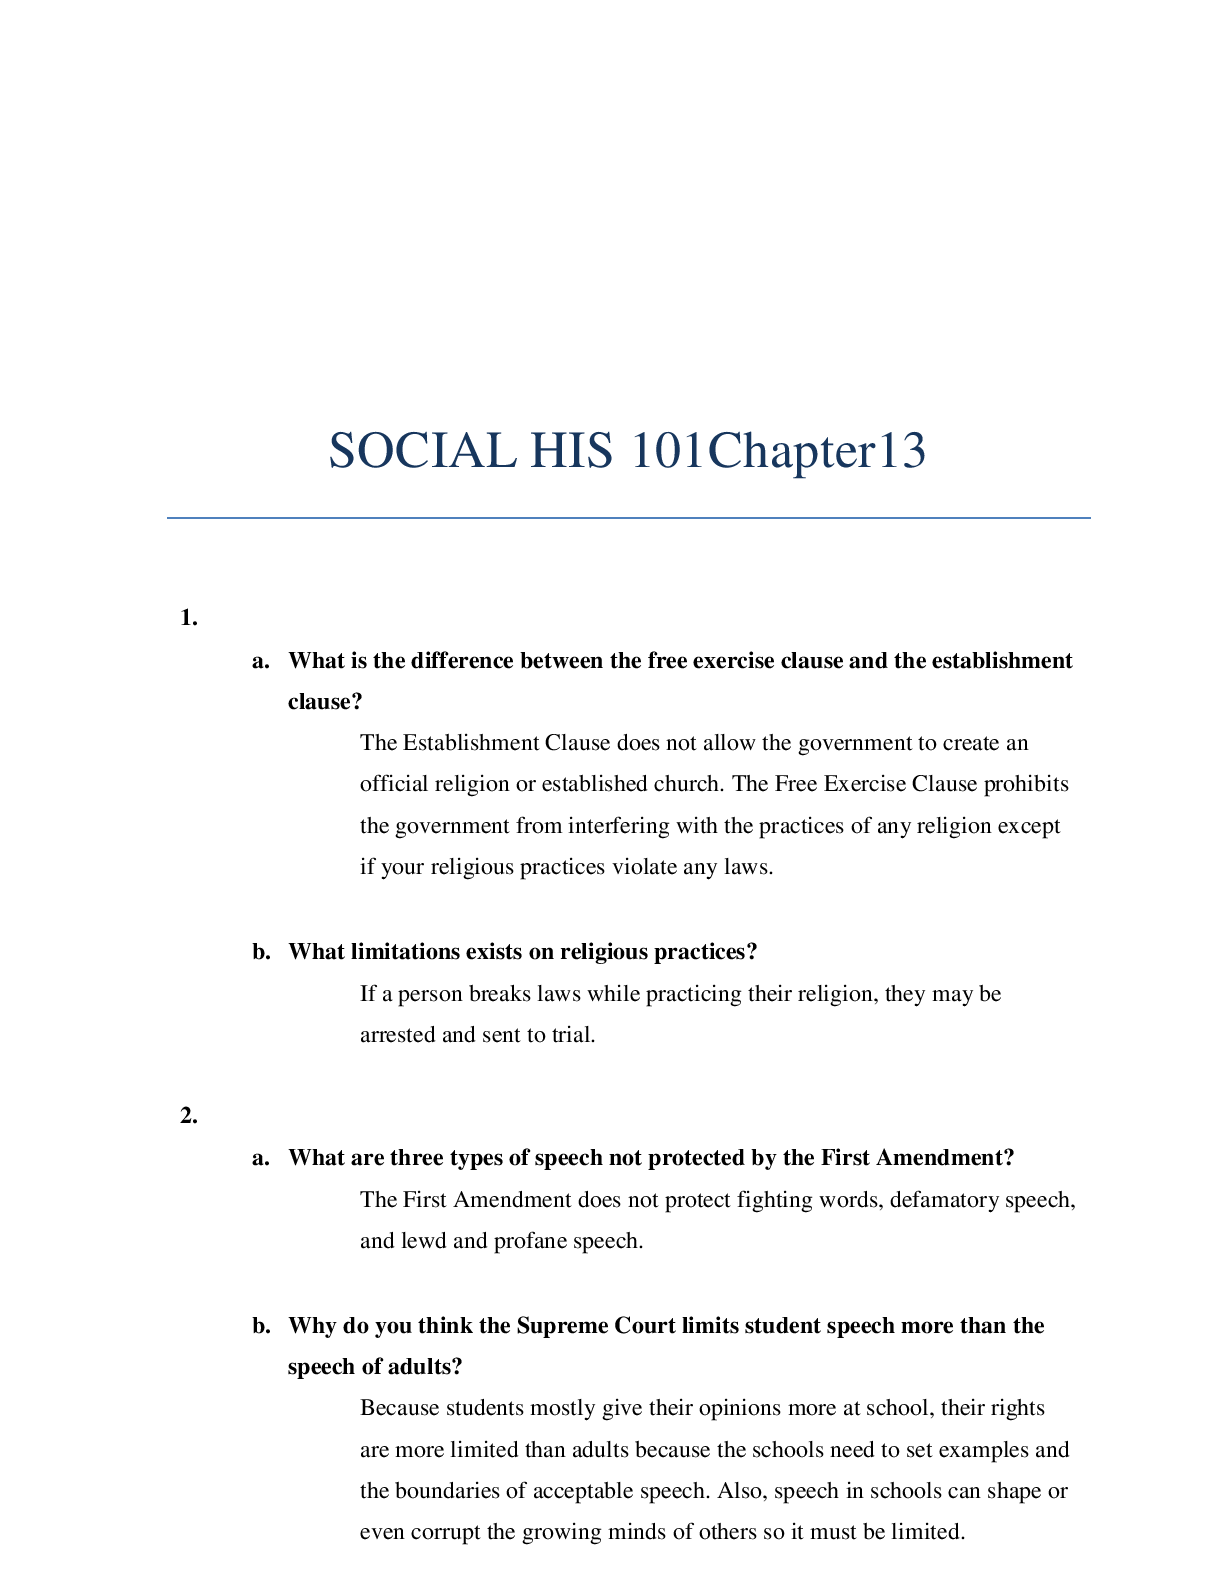 SOCIAL HIS 101Chapter13. Questions and Answers in 2020